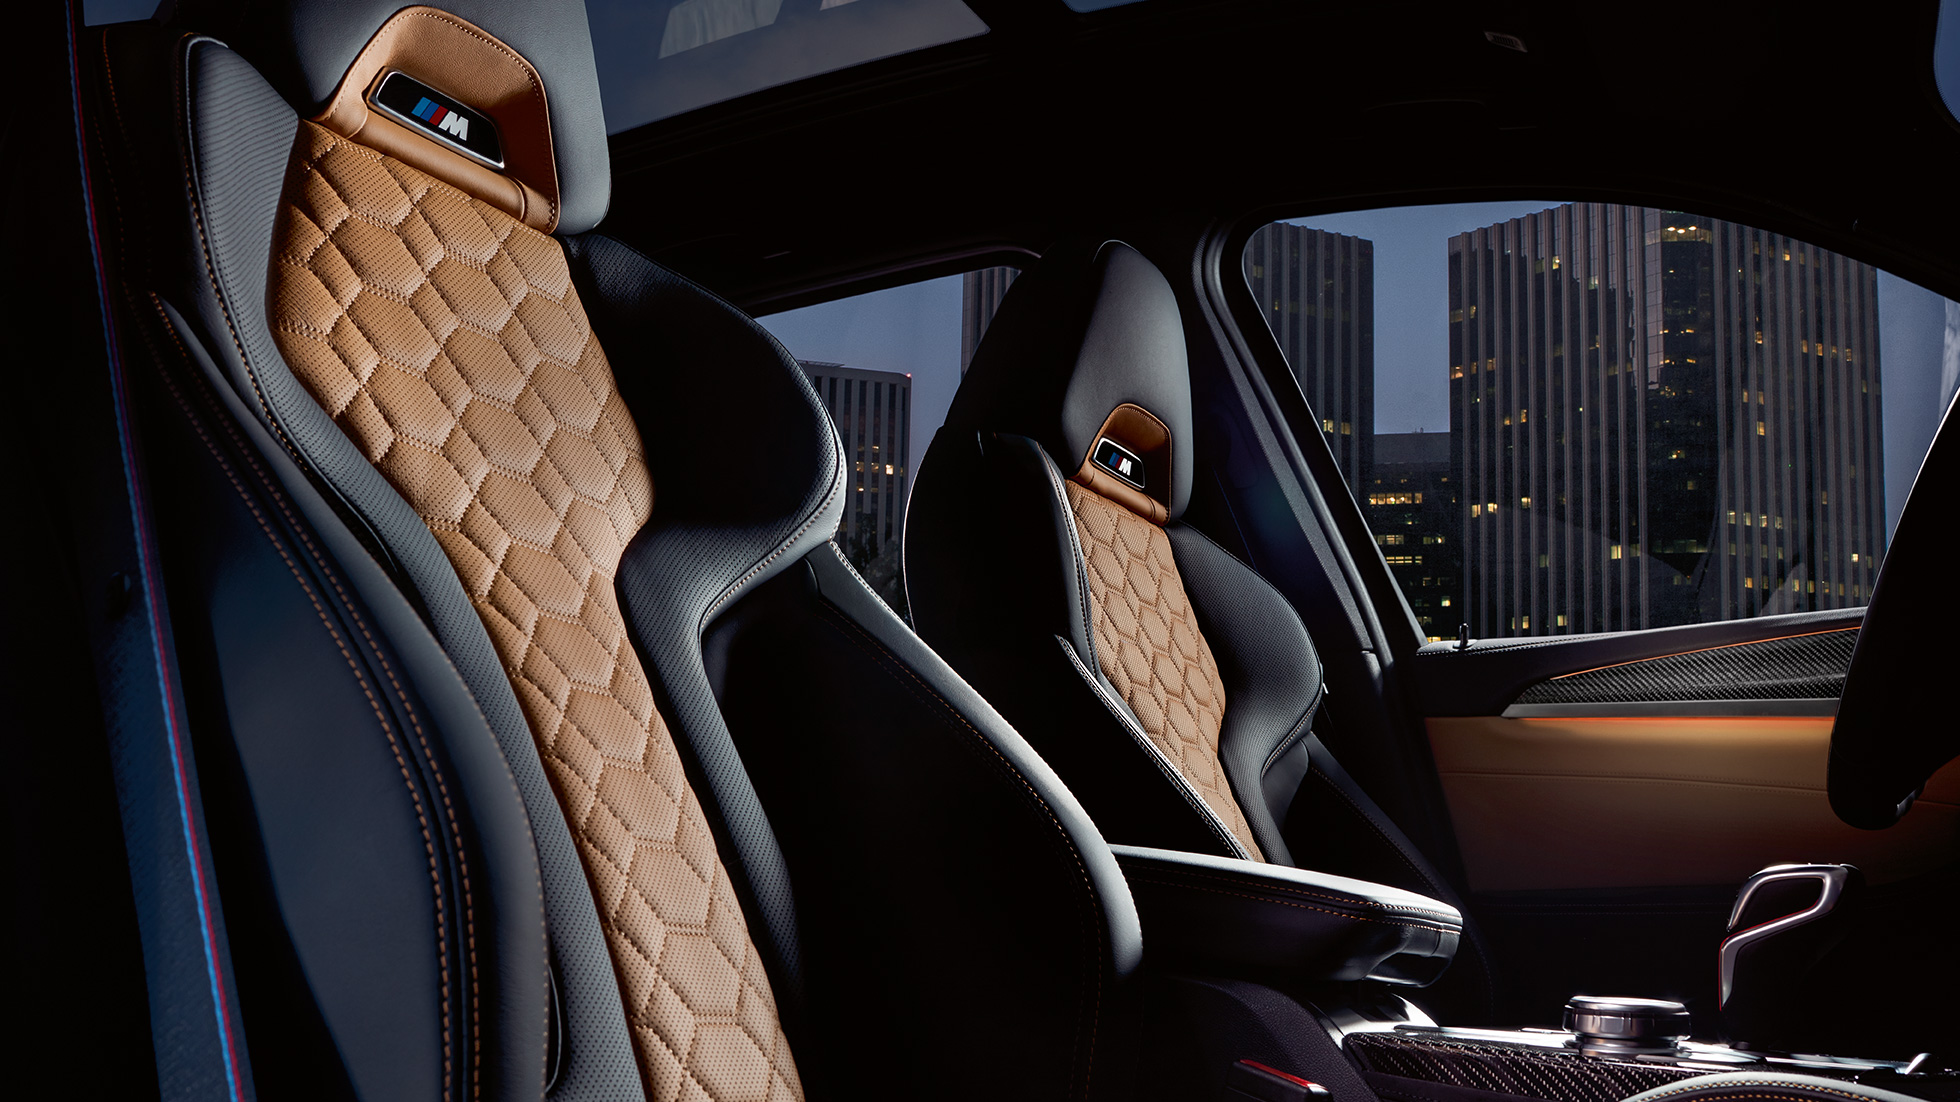 BMW X3 M Competition, interior, M Sport seats in 'Merino' leather with Alcantara. F97